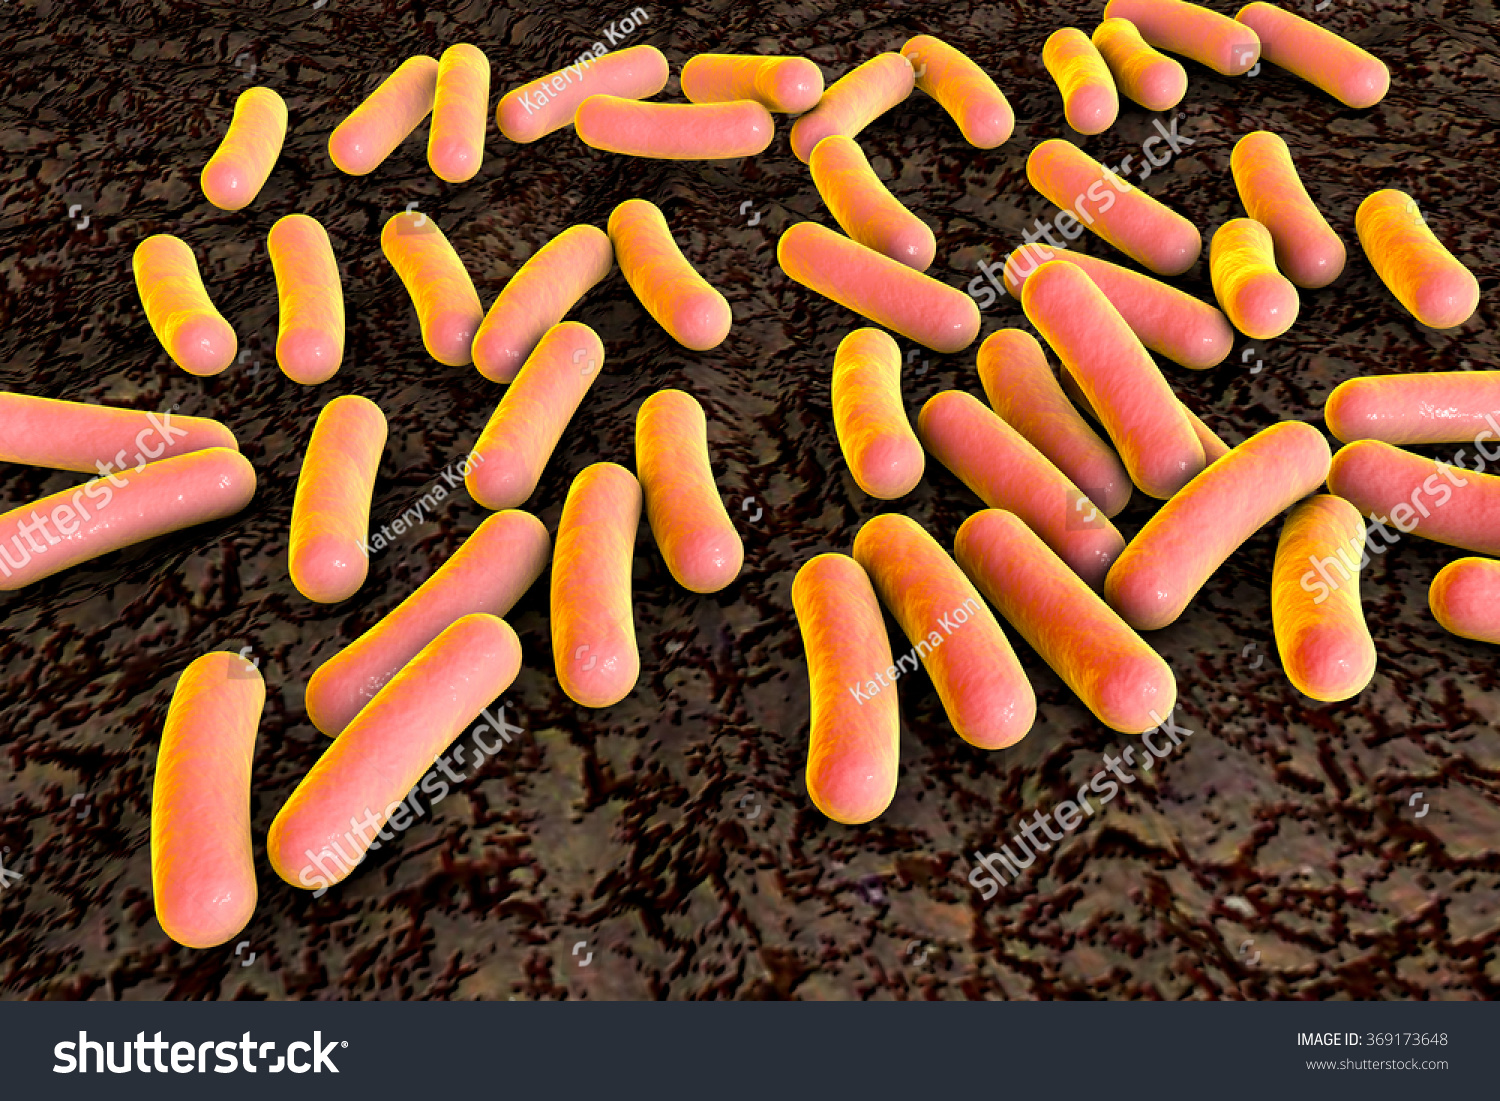 pseudomonas aeruginosa and nosocomial infections Methods ii virulence patterns of pseudomonas aeruginosa nosocomial strains associated with different clinical infections ani.